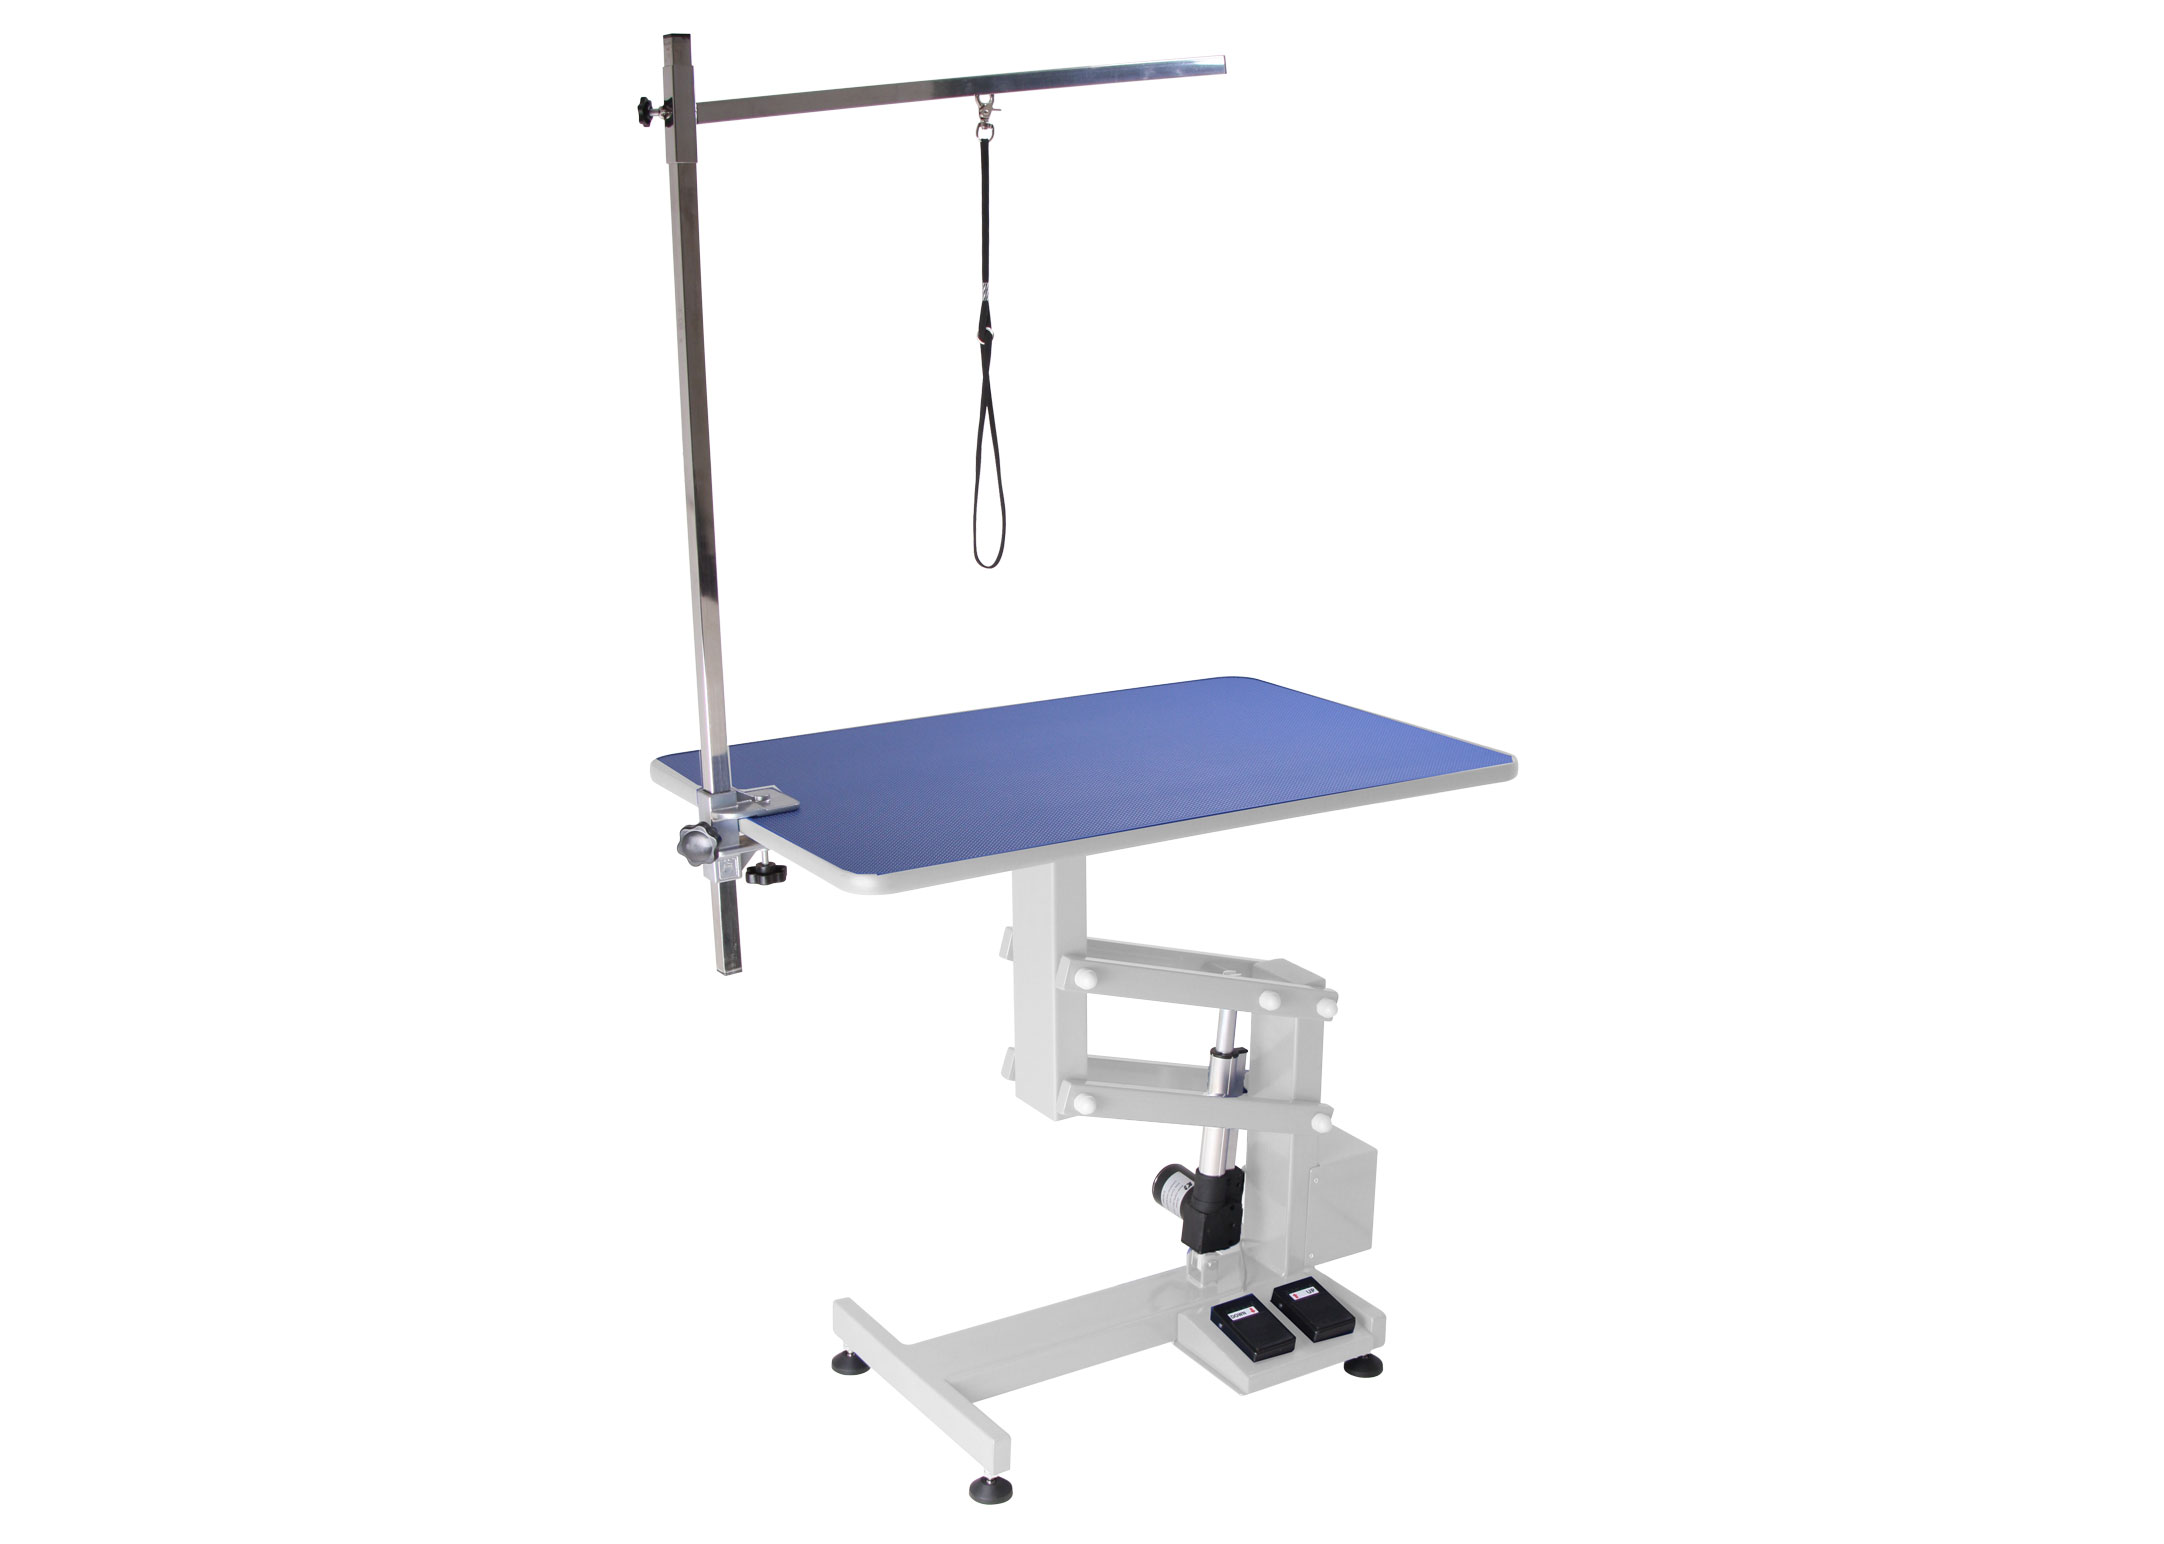 Groom-X Pro Compact Electric Grooming Table 90x60x53-102cmh with Control post